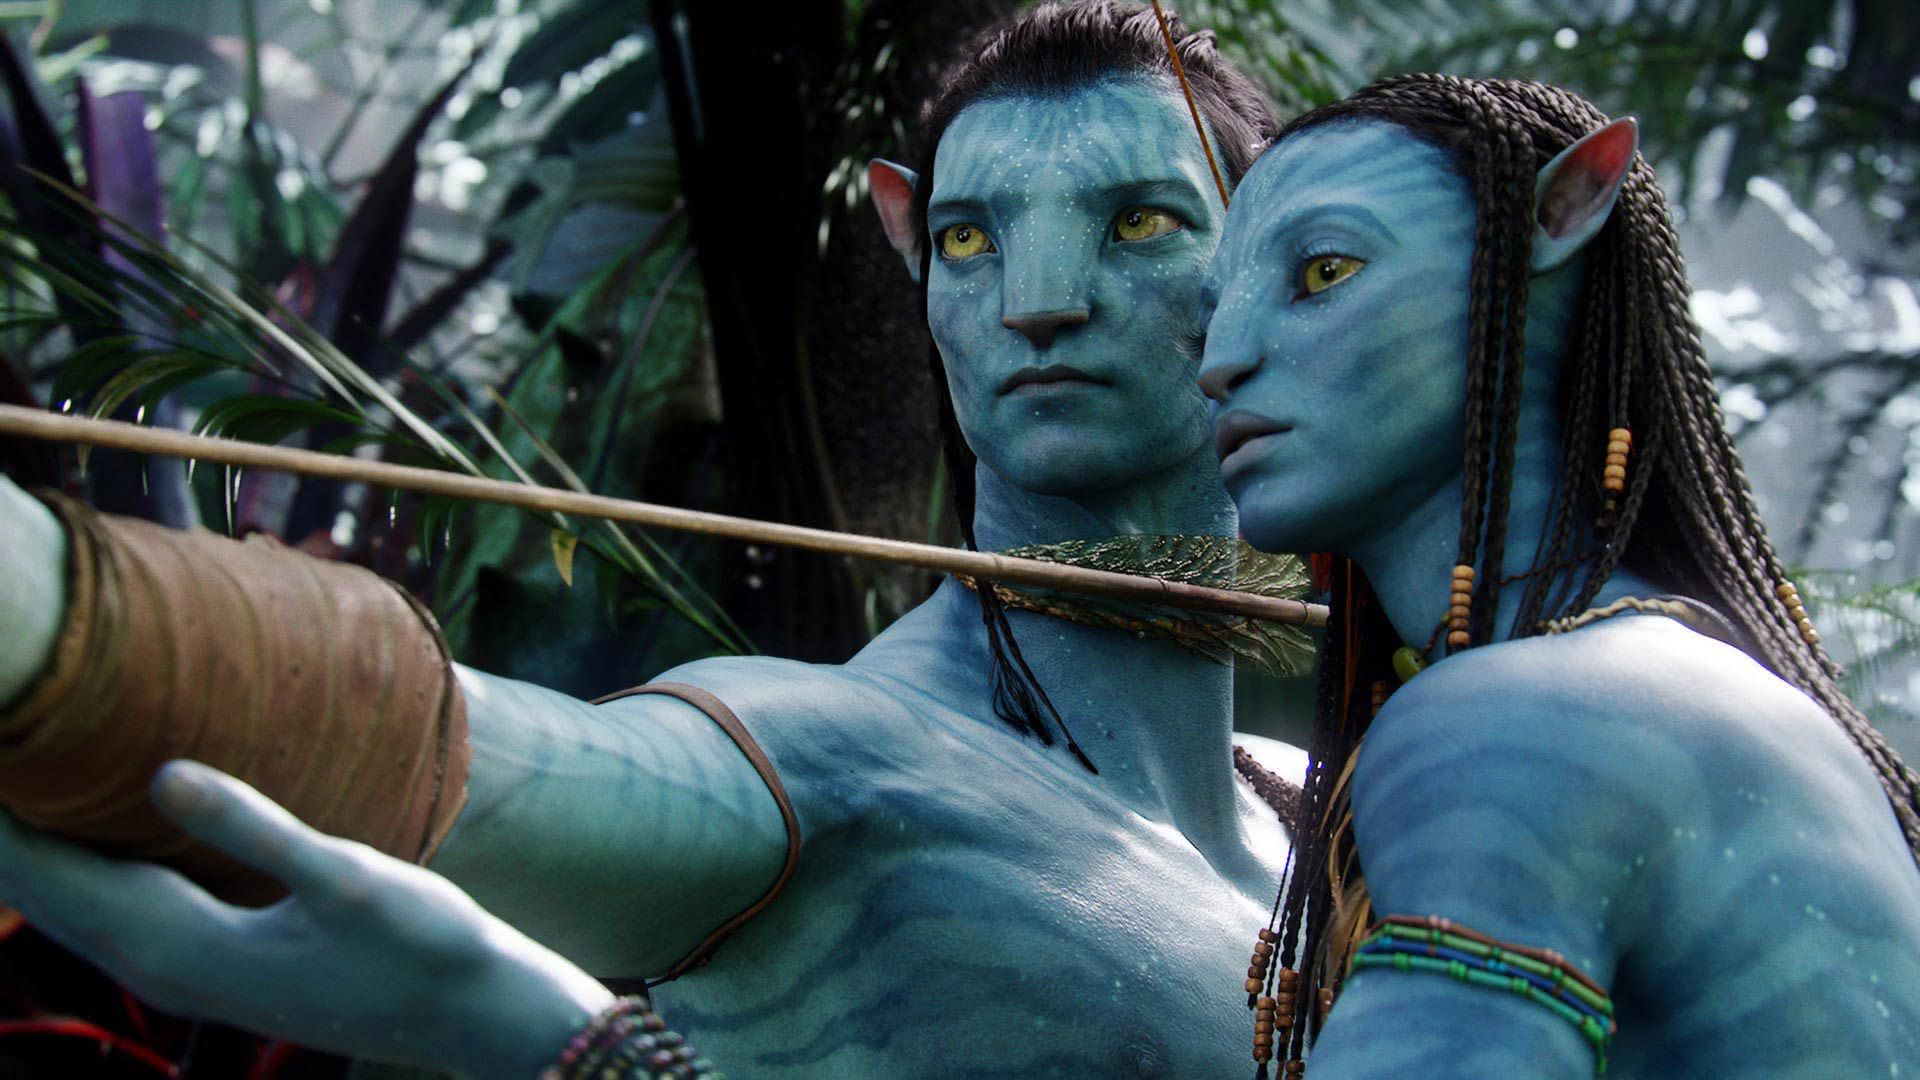 James Cameron arrives in New Zealand to resume recording of 'Avatar 2'